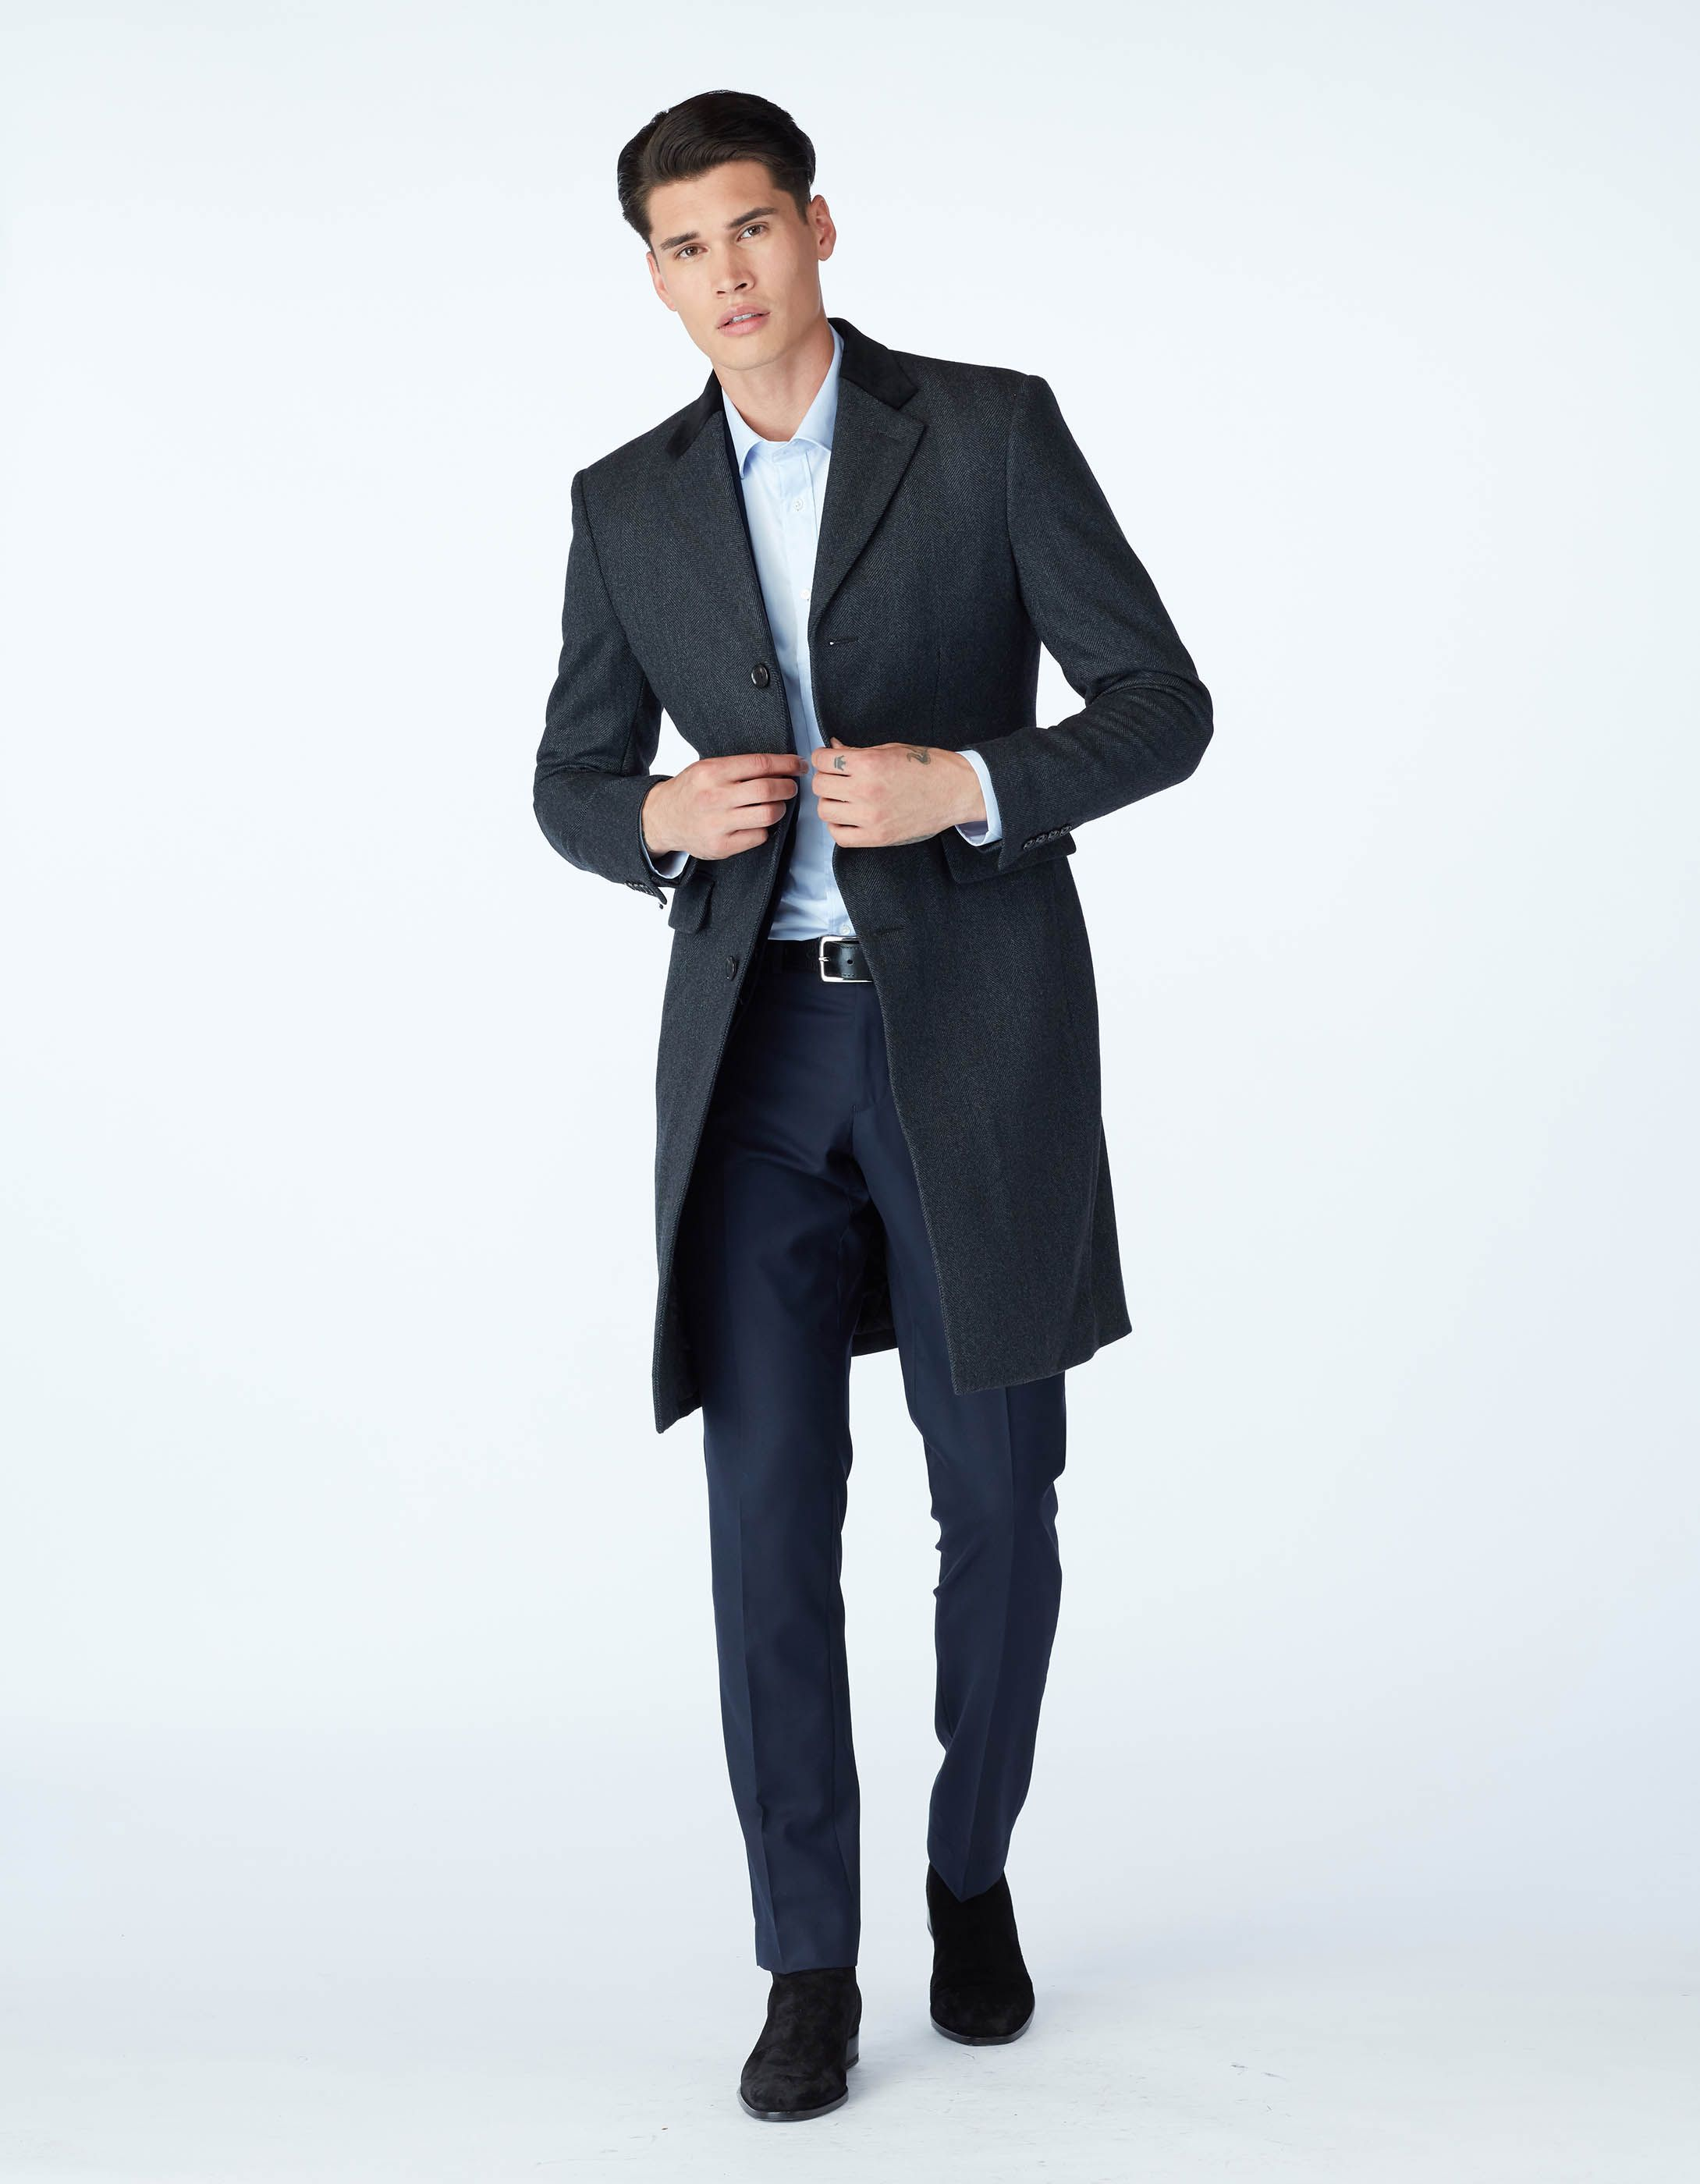 Indochino Helped Make Custom Suiting More Affordable. Now, the Brand Is Doing It For Outerwear.